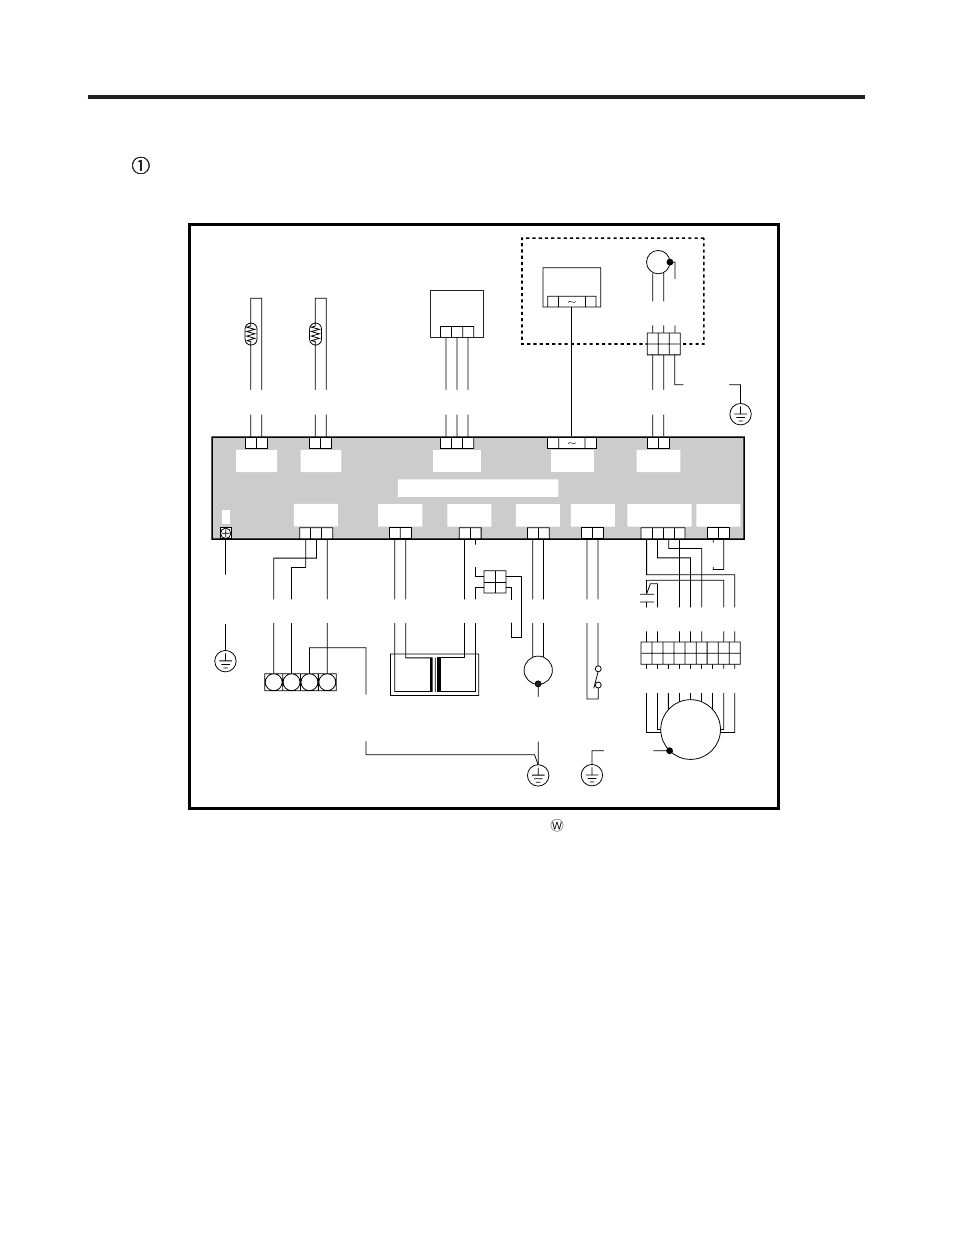 Electric wiring diagram, Electrical wiring diagrams, Controller (cr on concept diagram, electric current diagram, network diagram, wiring diagram, critical mass diagram, pictorial diagram, line diagram, process diagram, exploded view diagram, sequence diagram, flow diagram, circuit diagram, yed graph diagram, isometric diagram, cutaway diagram, schema diagram, carm diagram, block diagram, system diagram, problem solving diagram,